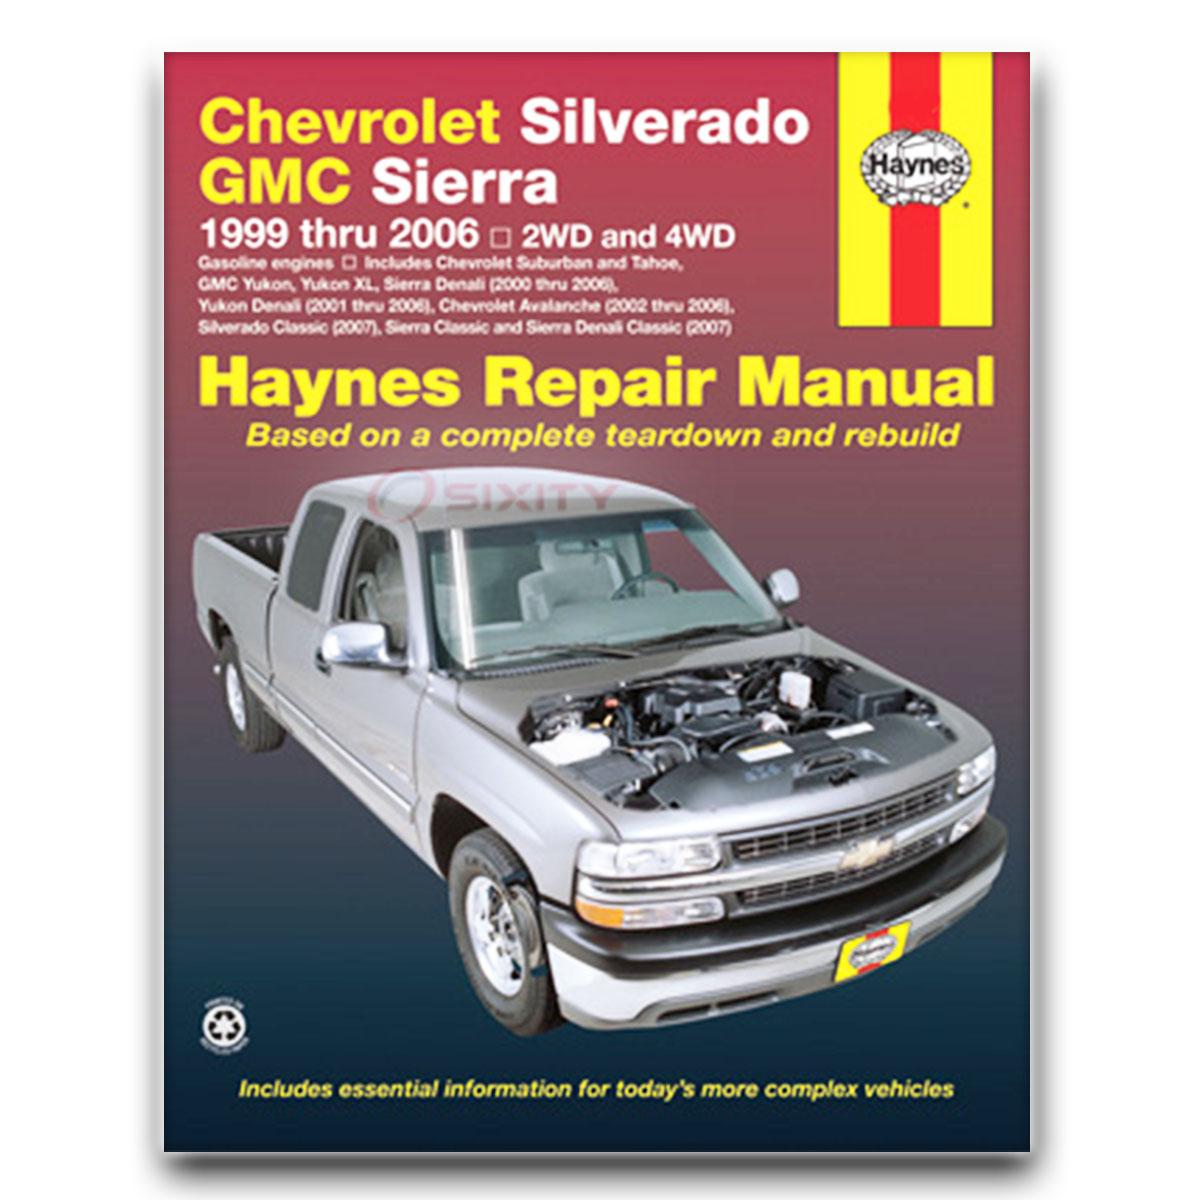 Haynes Repair Manual for Chevy Silverado 2500 Base WT LS LT Shop Service td